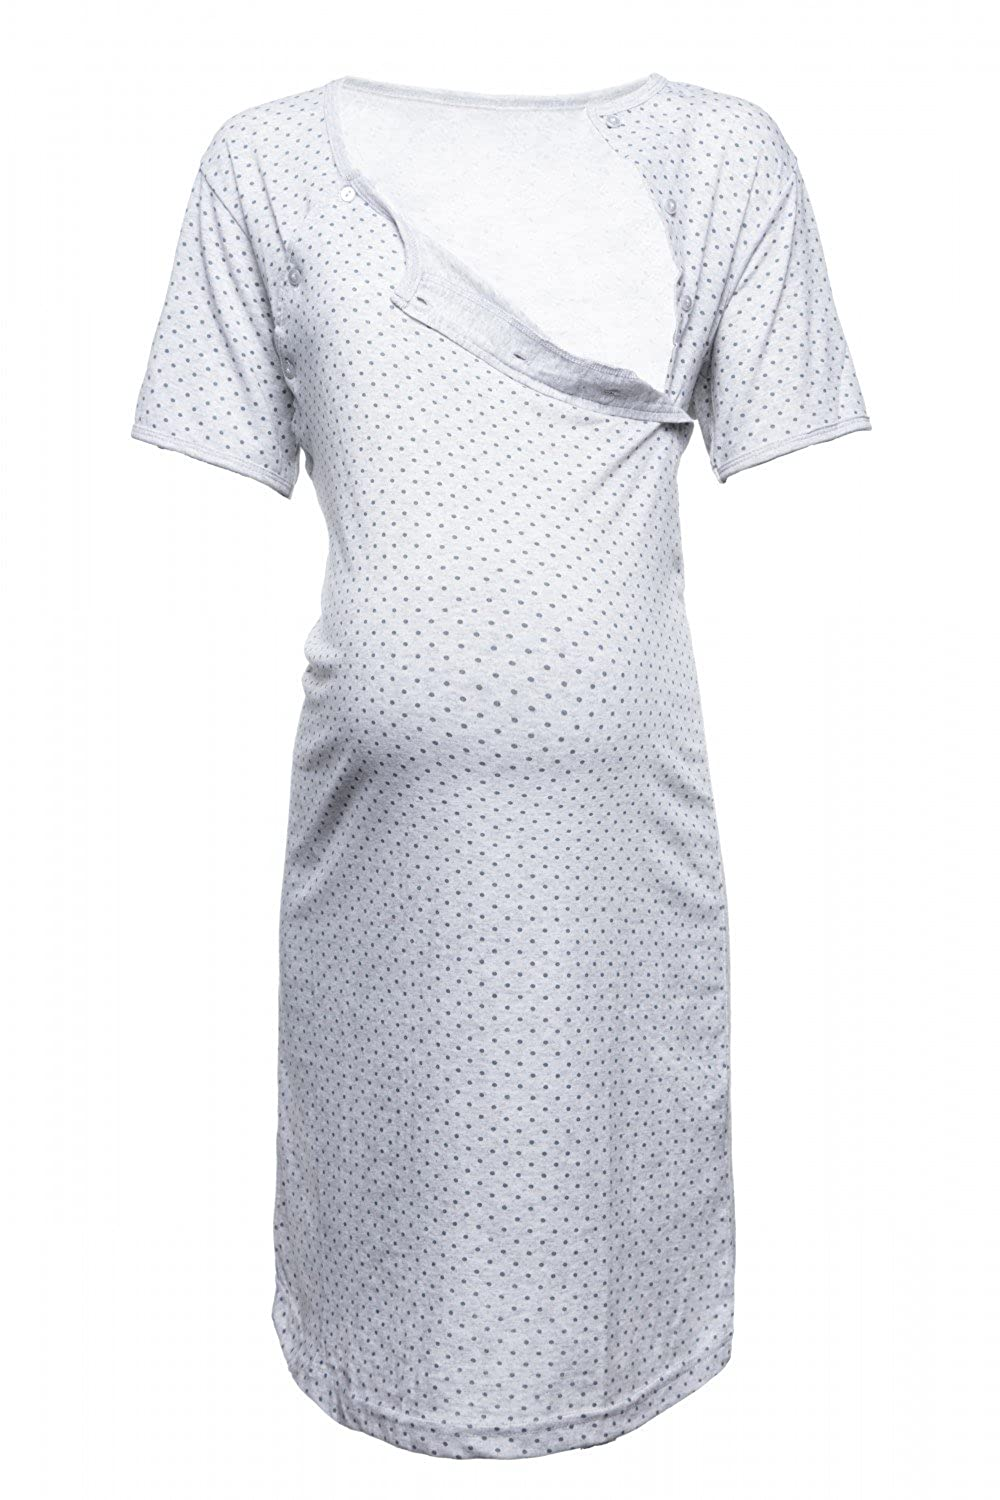 Happy Mama. Womens Maternity Hospital Gown Nightie Polka Dot Breastfeeding. 115p pregnight_115